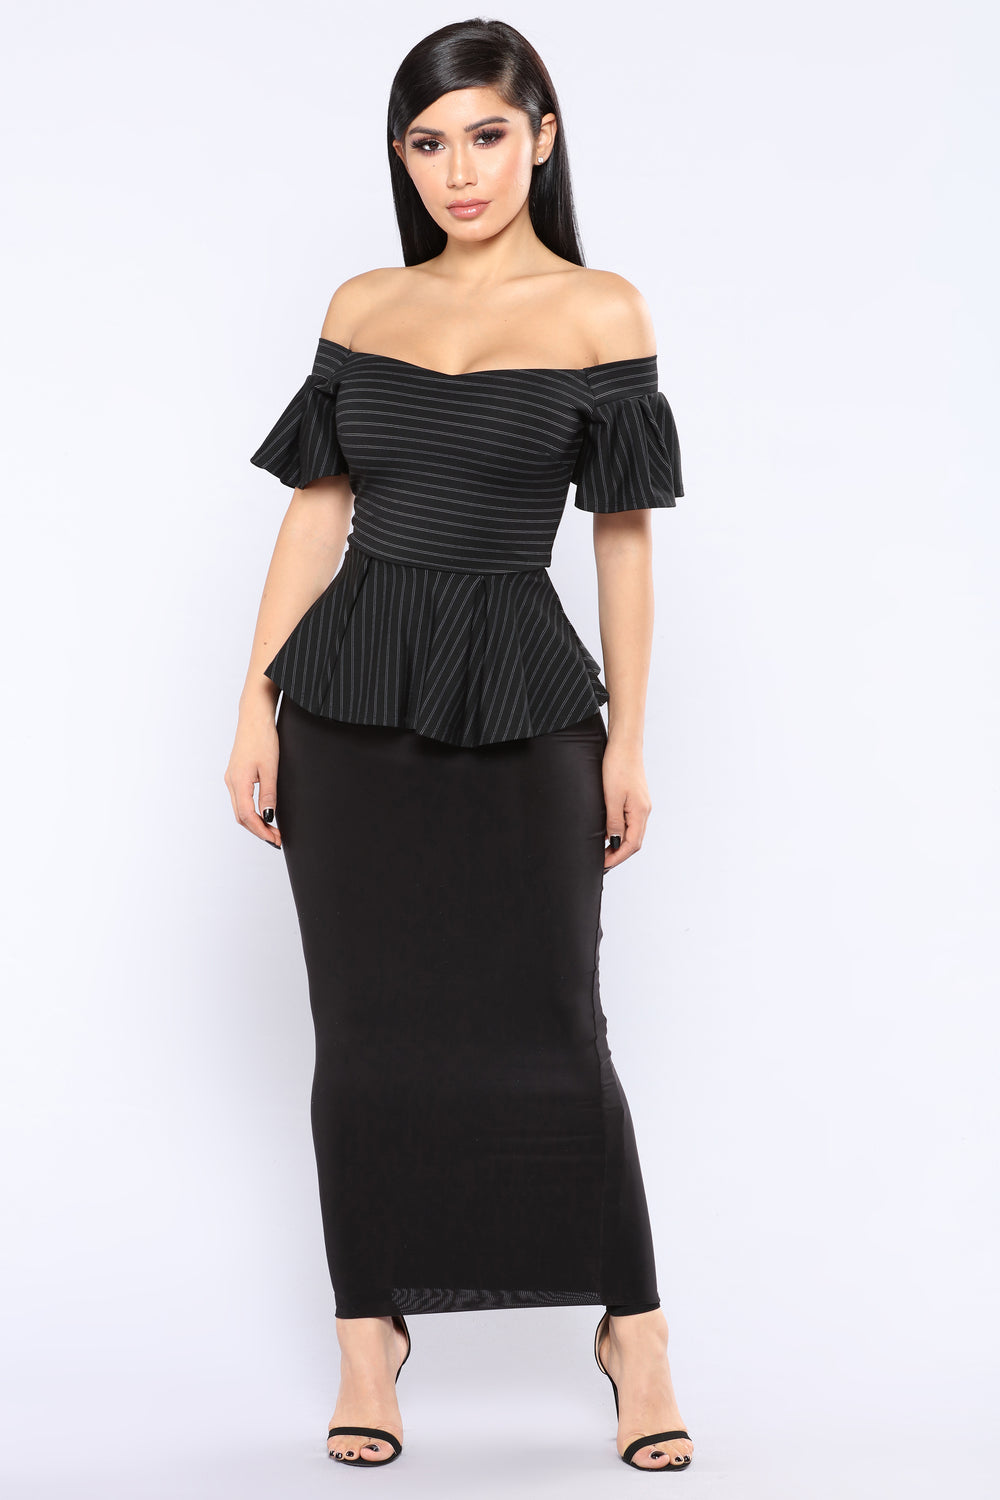 No Questions Off Shoulder Top - Black/White